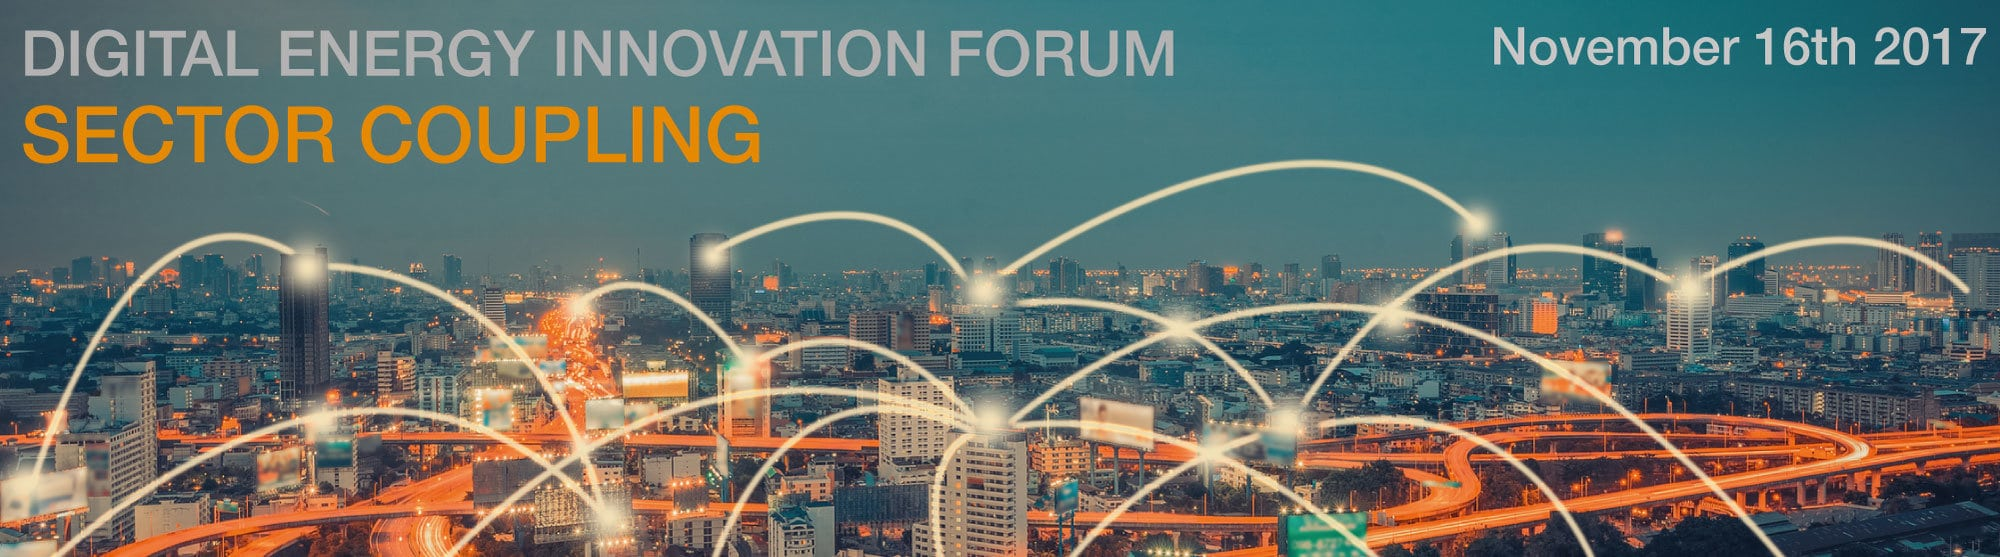 Digital Energy Innovation Forum